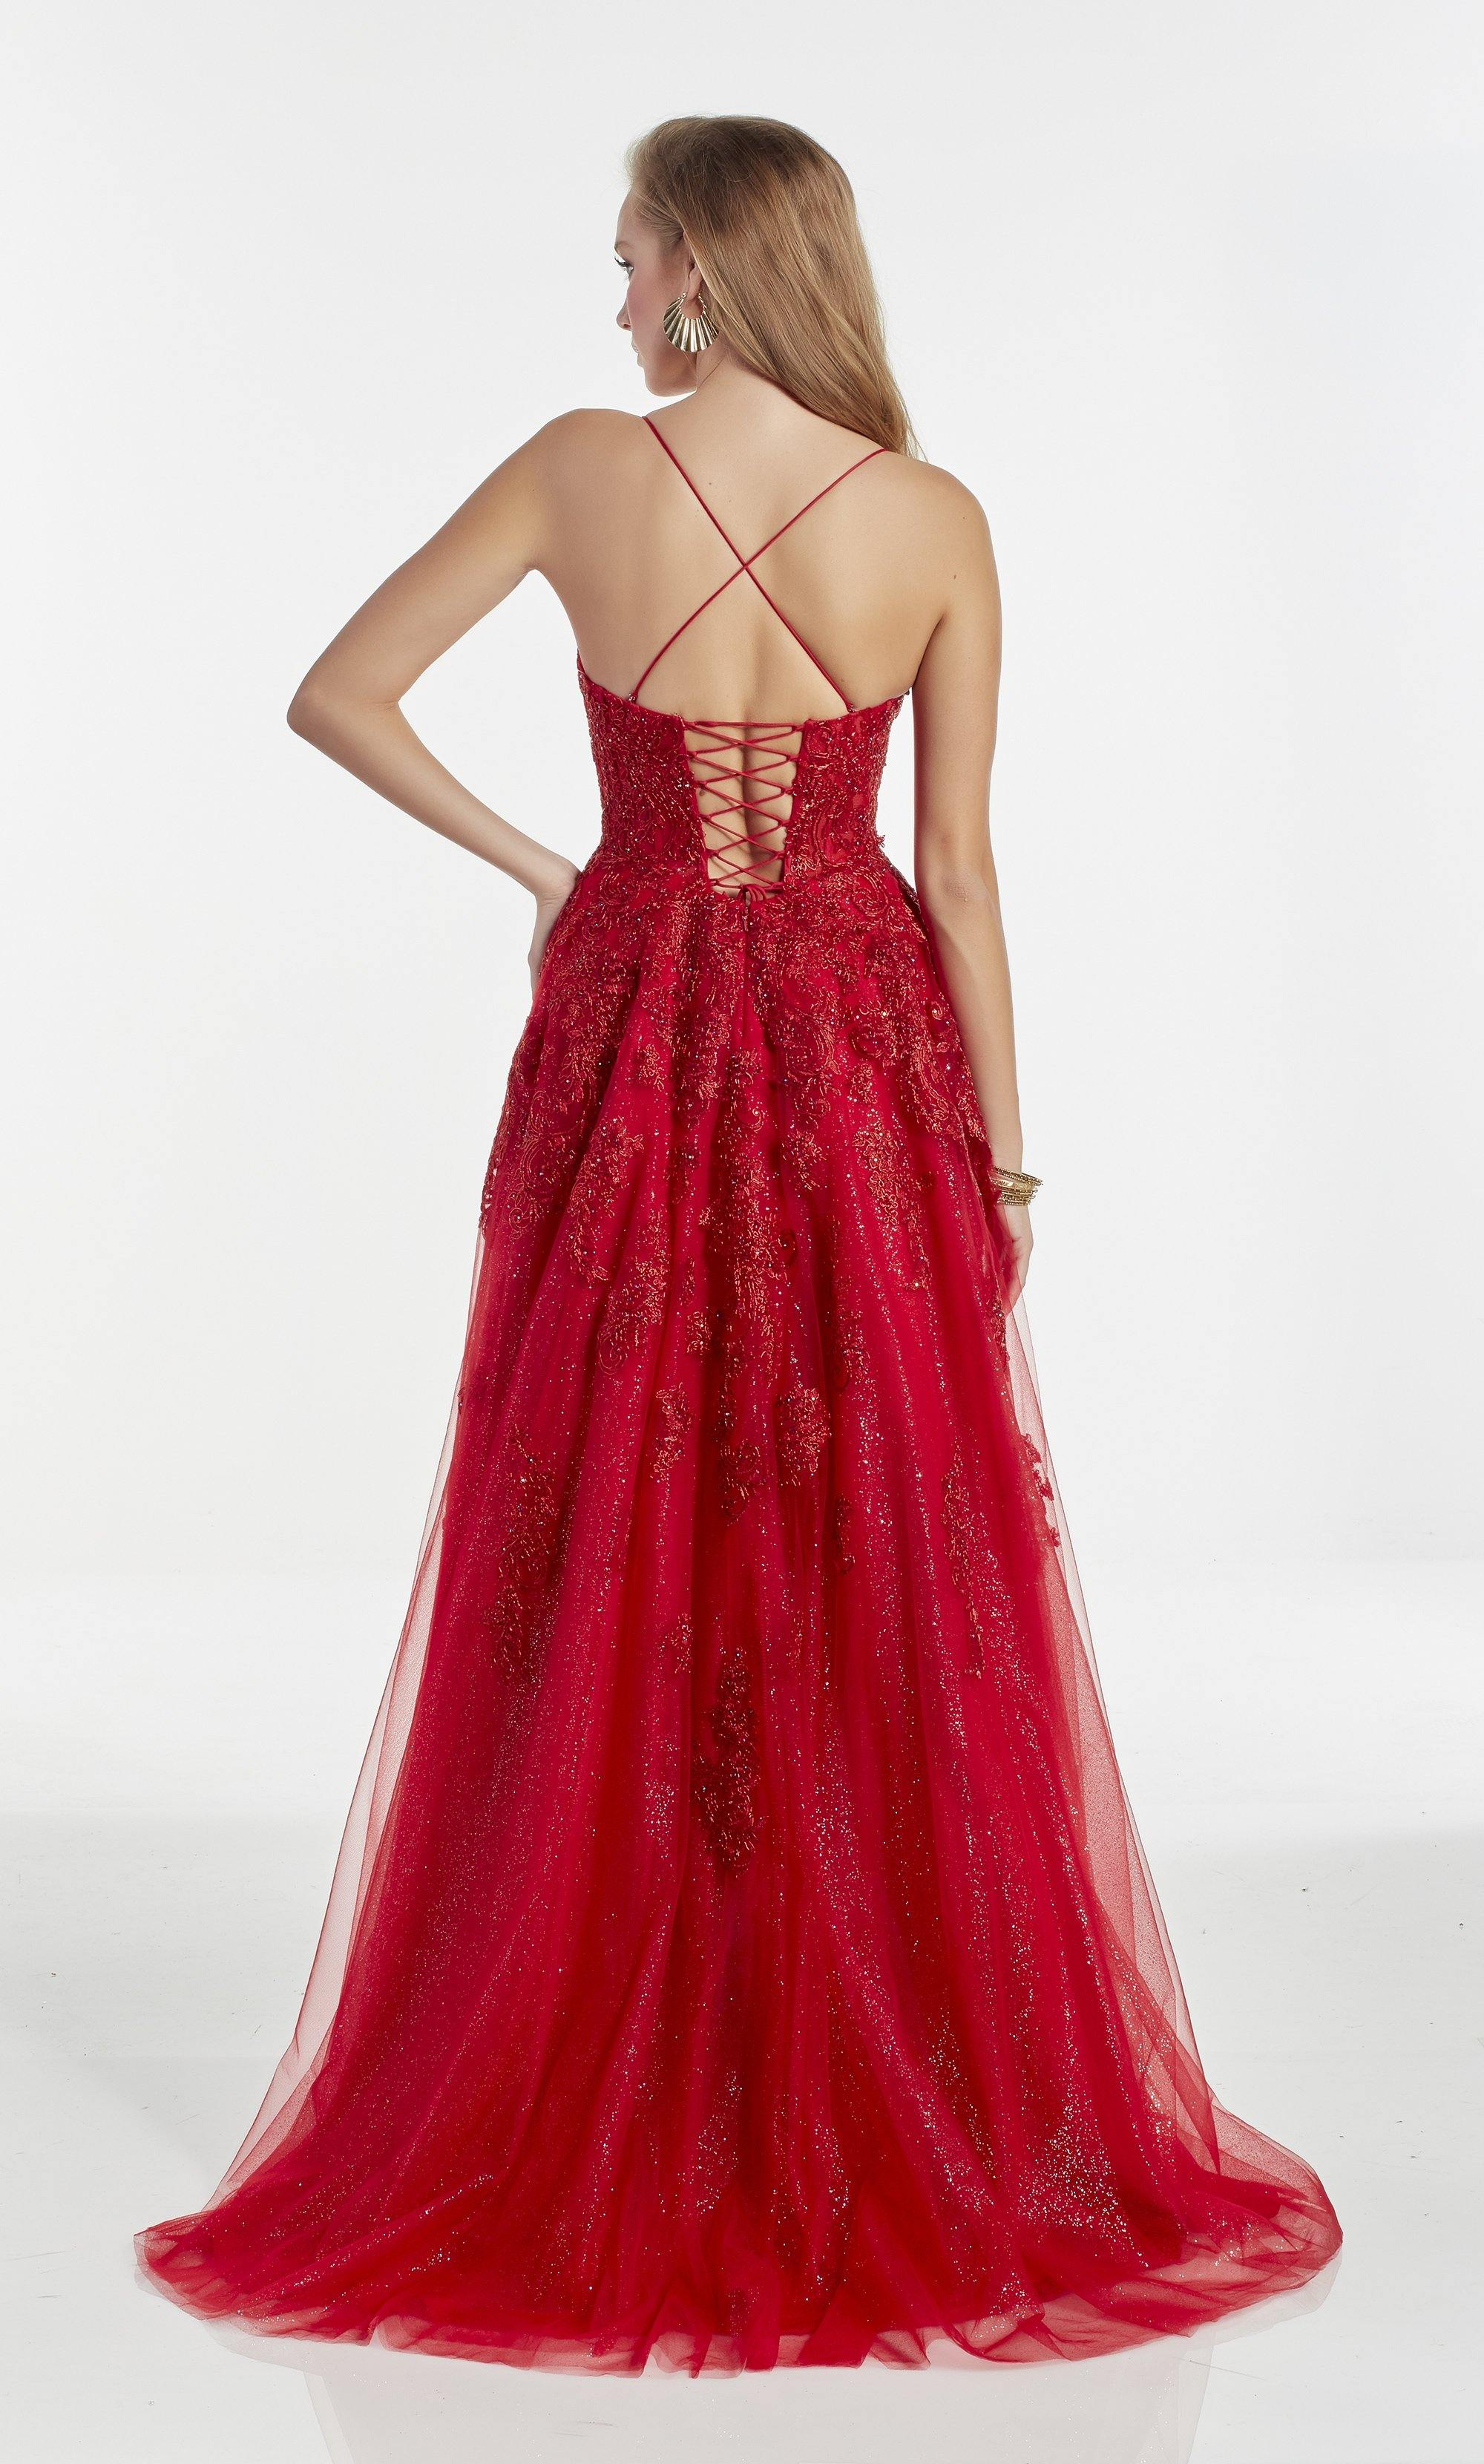 Red glitter tulle ballgown with a square neckline and embroidery detail